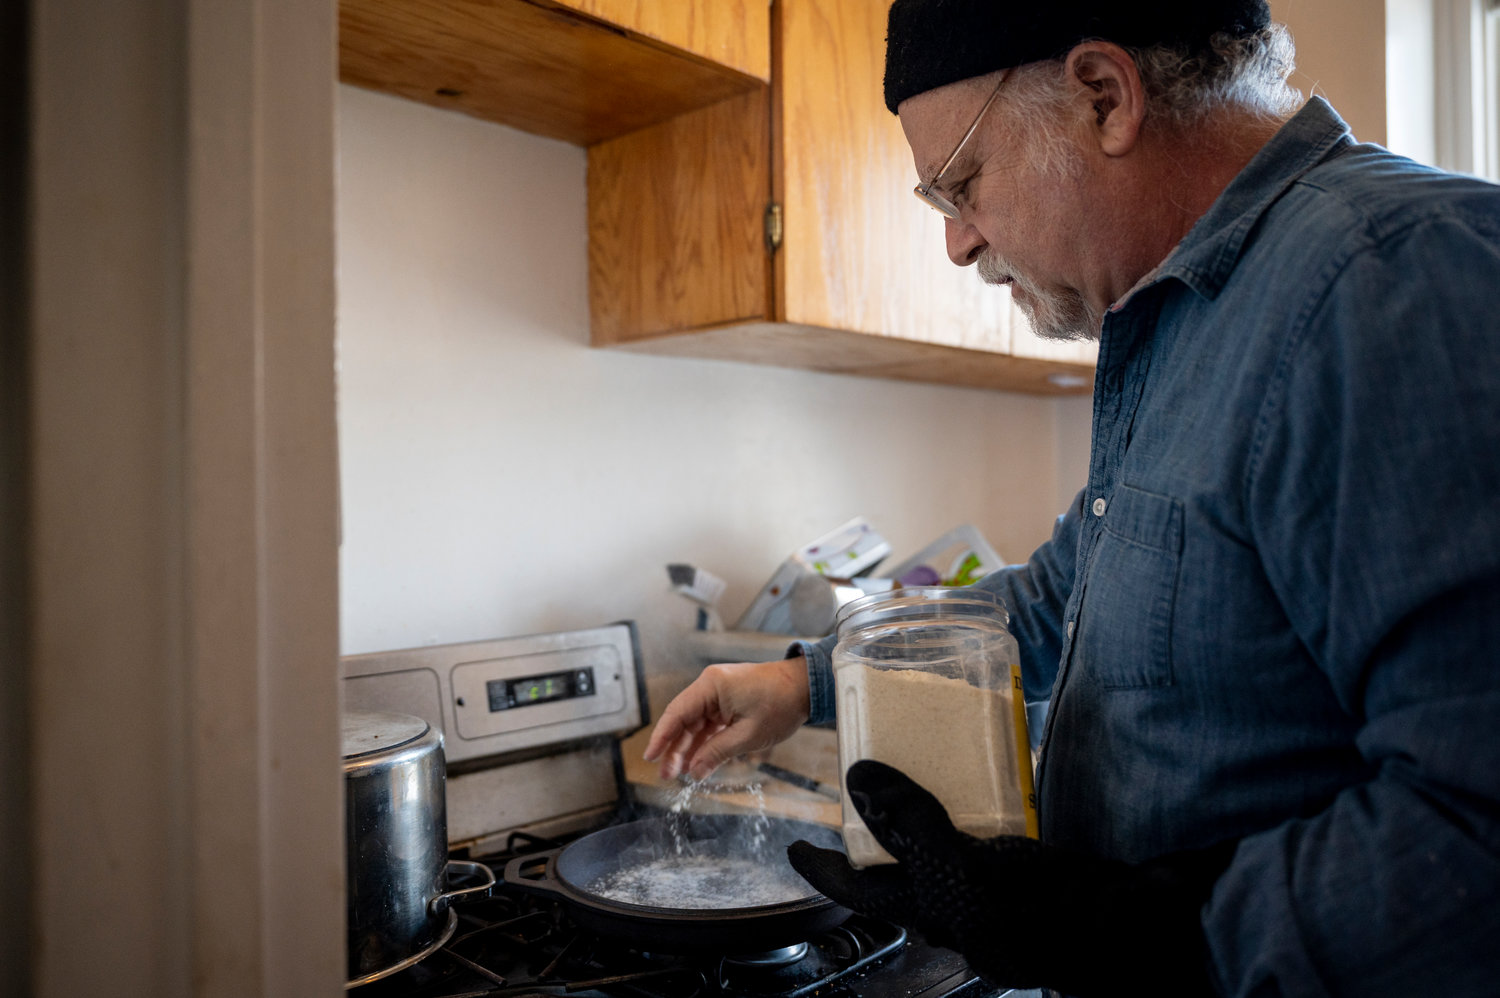 Early in the coronavirus pandemic, Arnie Adler says he discovered he makes a really good loaf of sourdough bread. Now he's bartering his bakery creations with neighbors for other homemade food items.